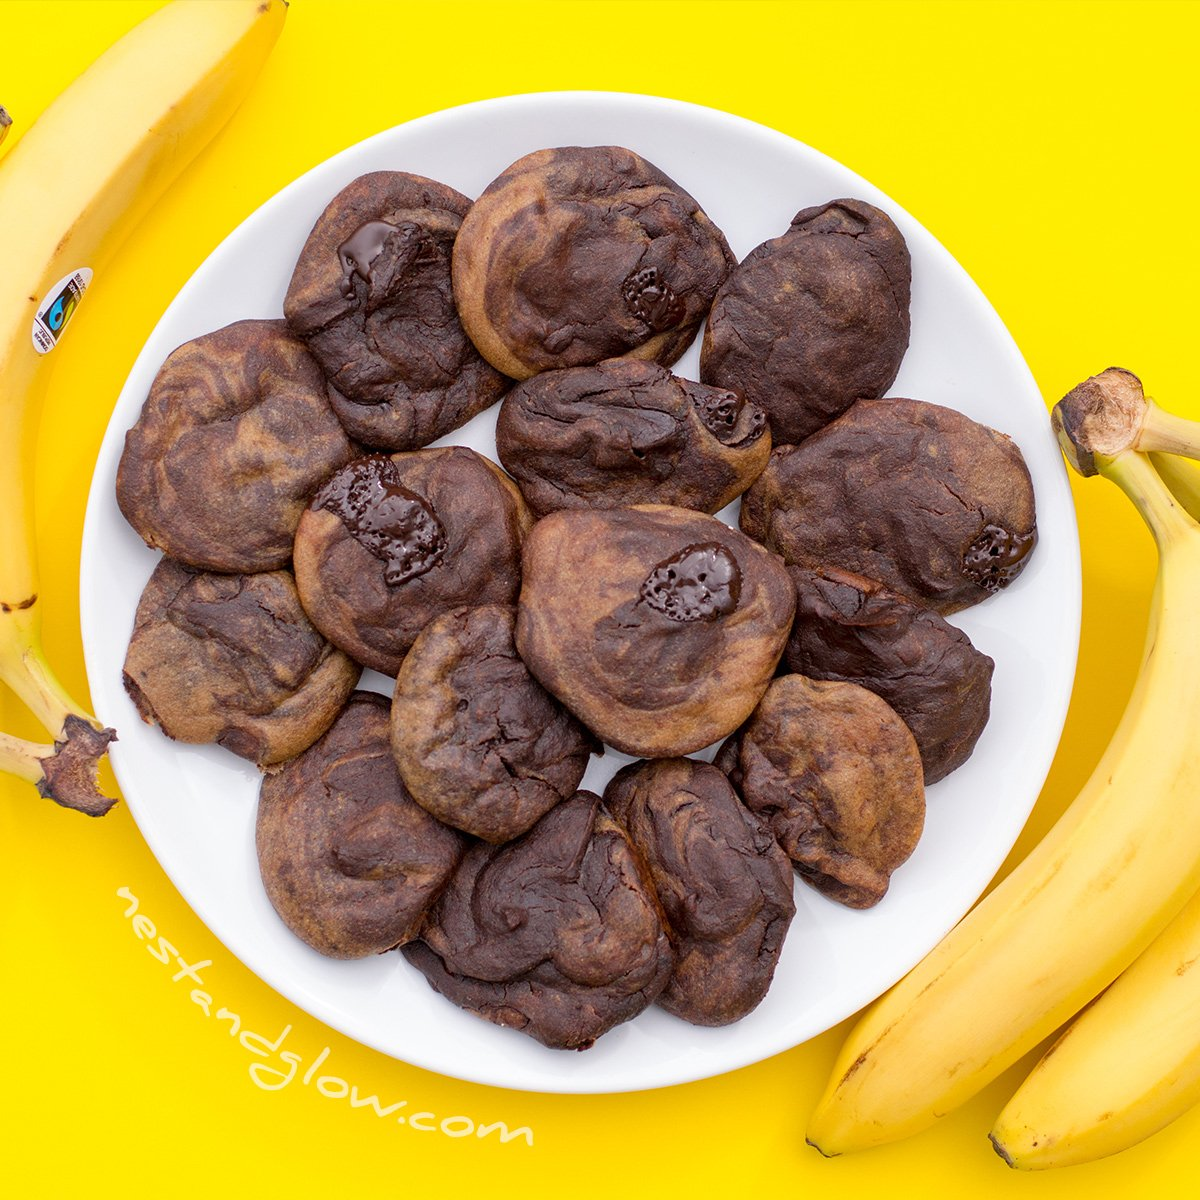 Quinoa Chocolate Banana Cookies